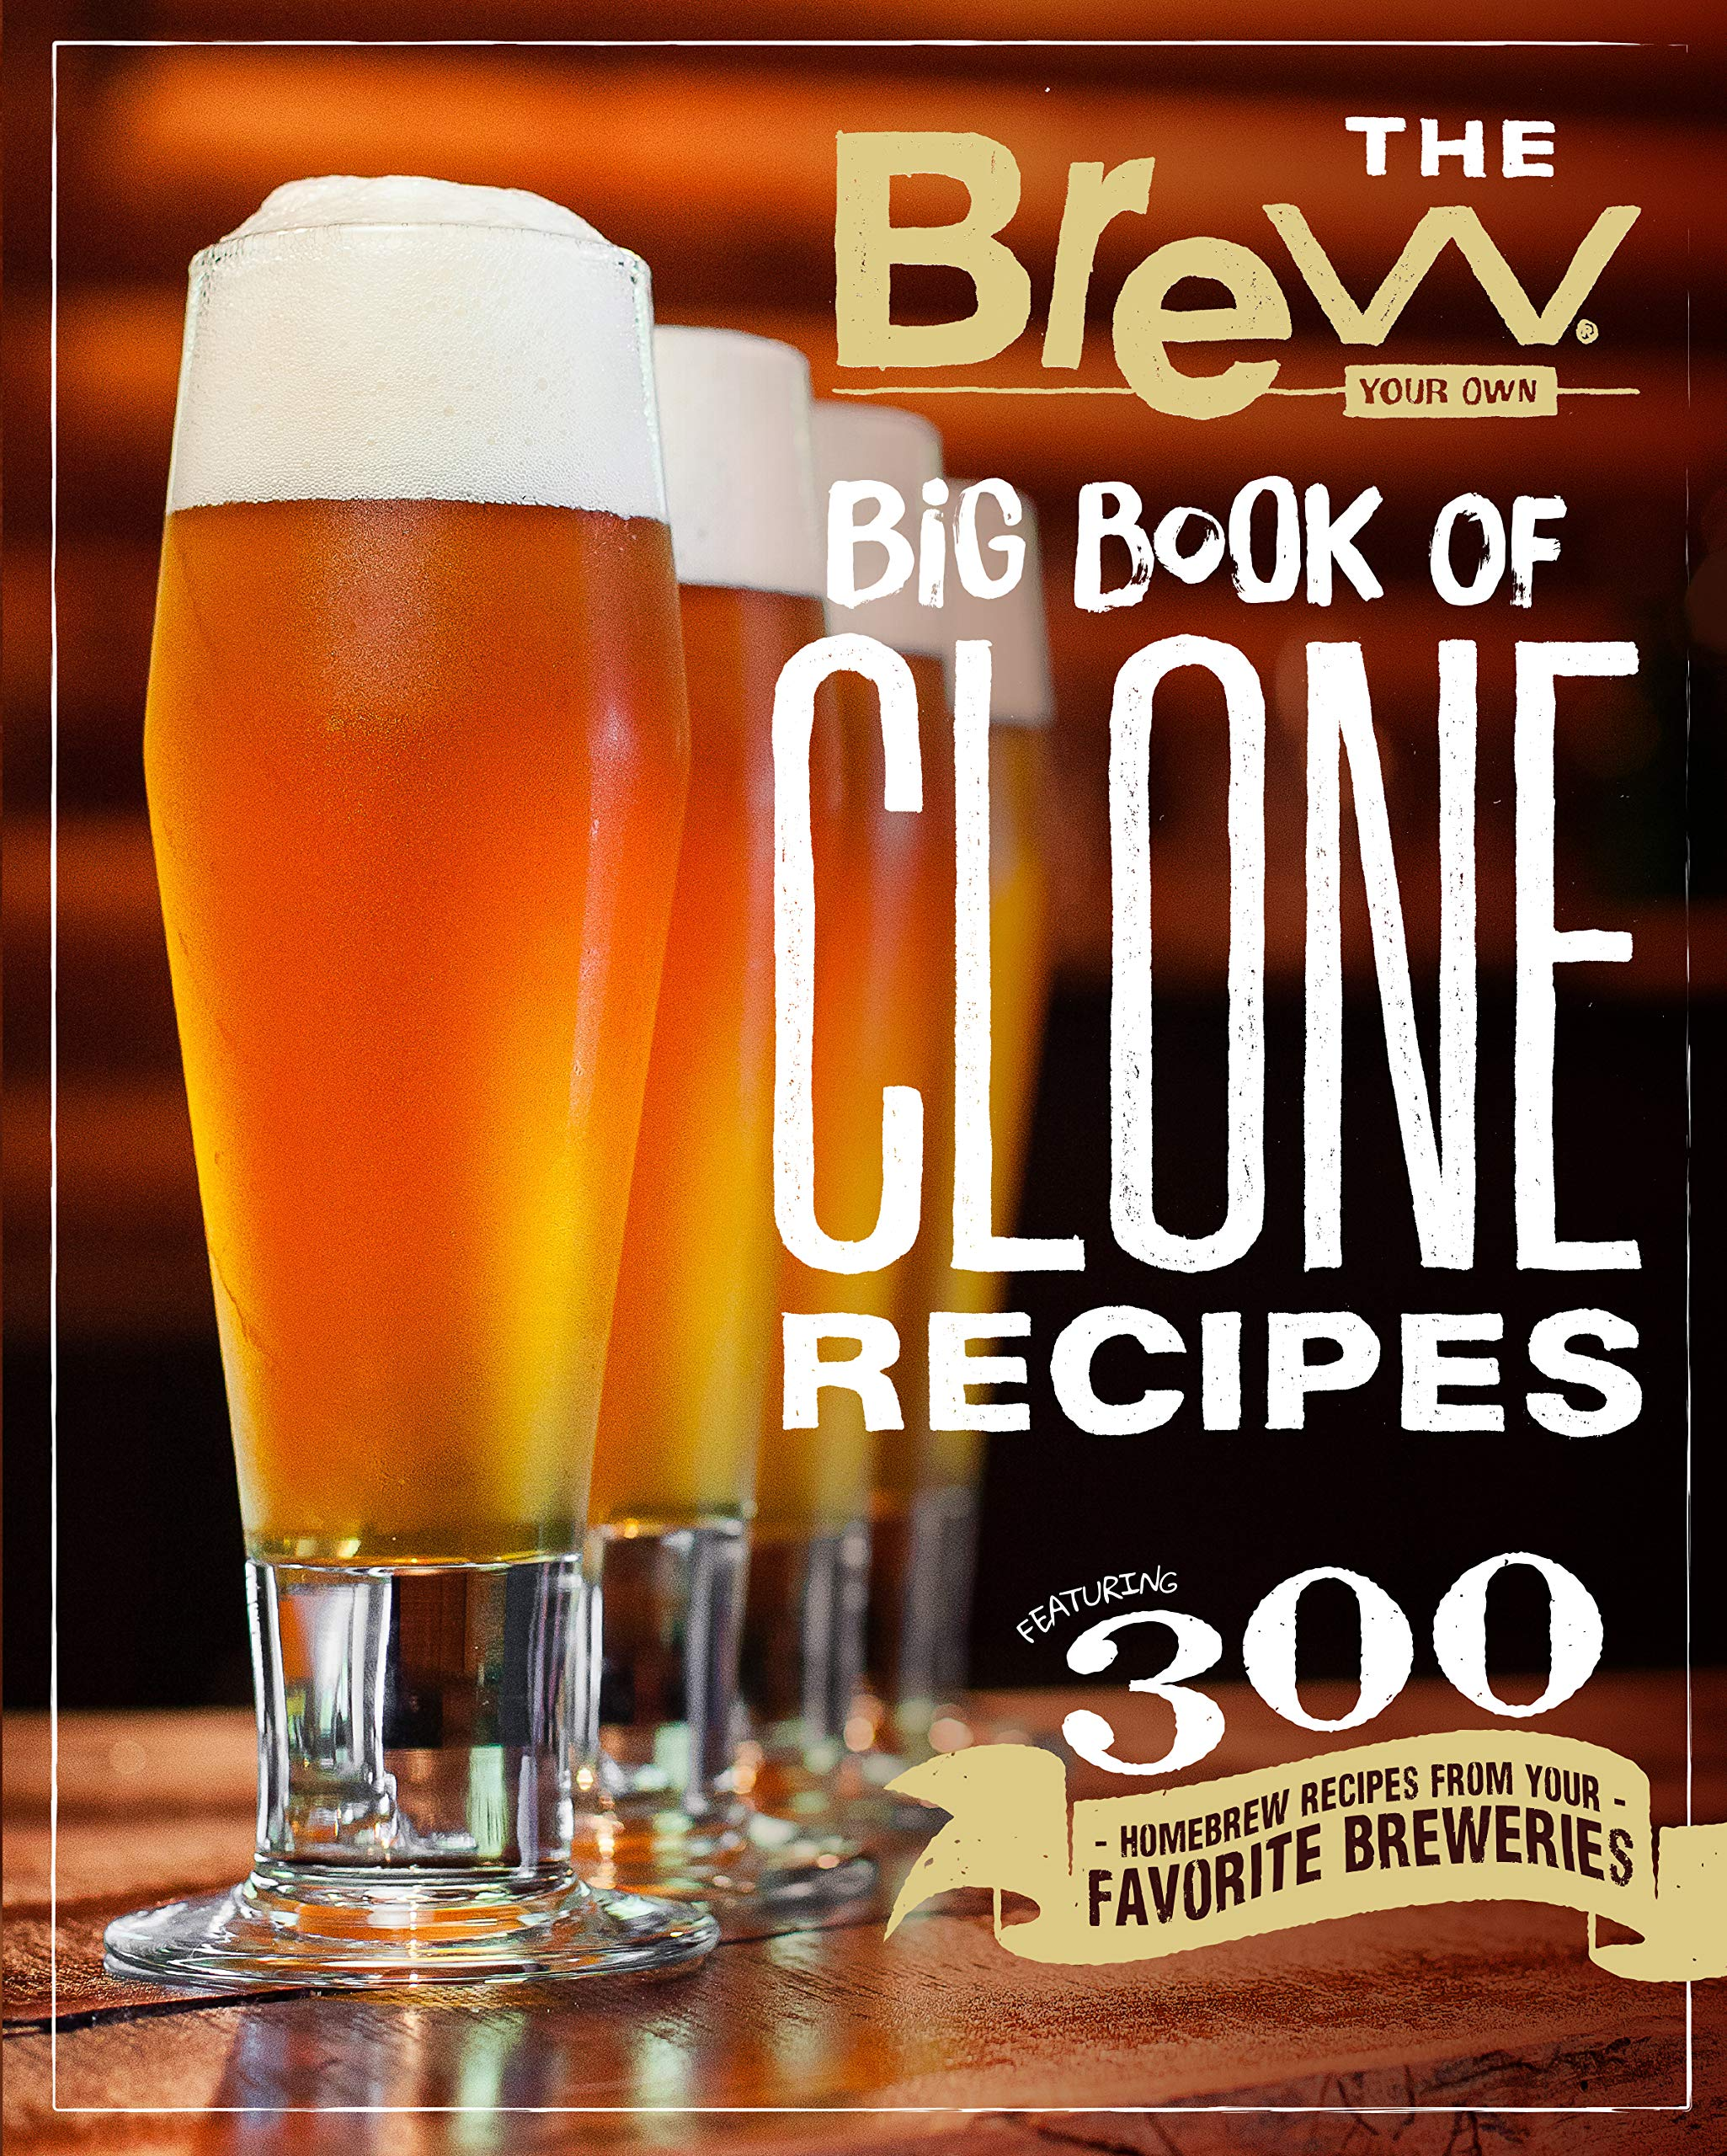 Image OfThe Brew Your Own Big Book Of Clone Recipes: Featuring 300 Homebrew Recipes From Your Favorite Breweries